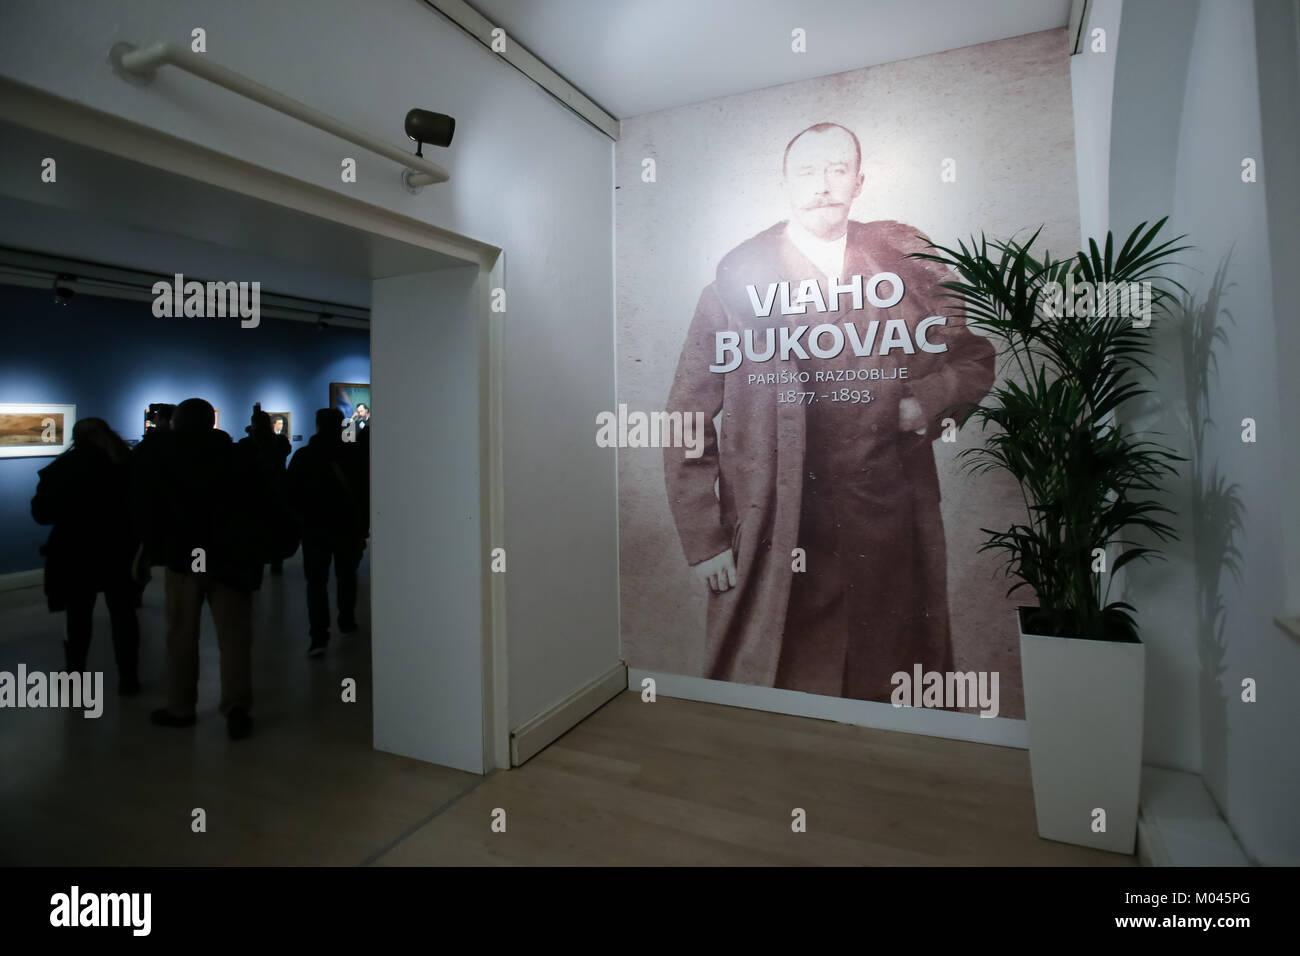 Zagreb, Croatia. 18th Jan, 2018. Portrait of the Vlaho Bukovac on the wall at the Cycle Vlaho Bukovac - Paris period Stock Photo